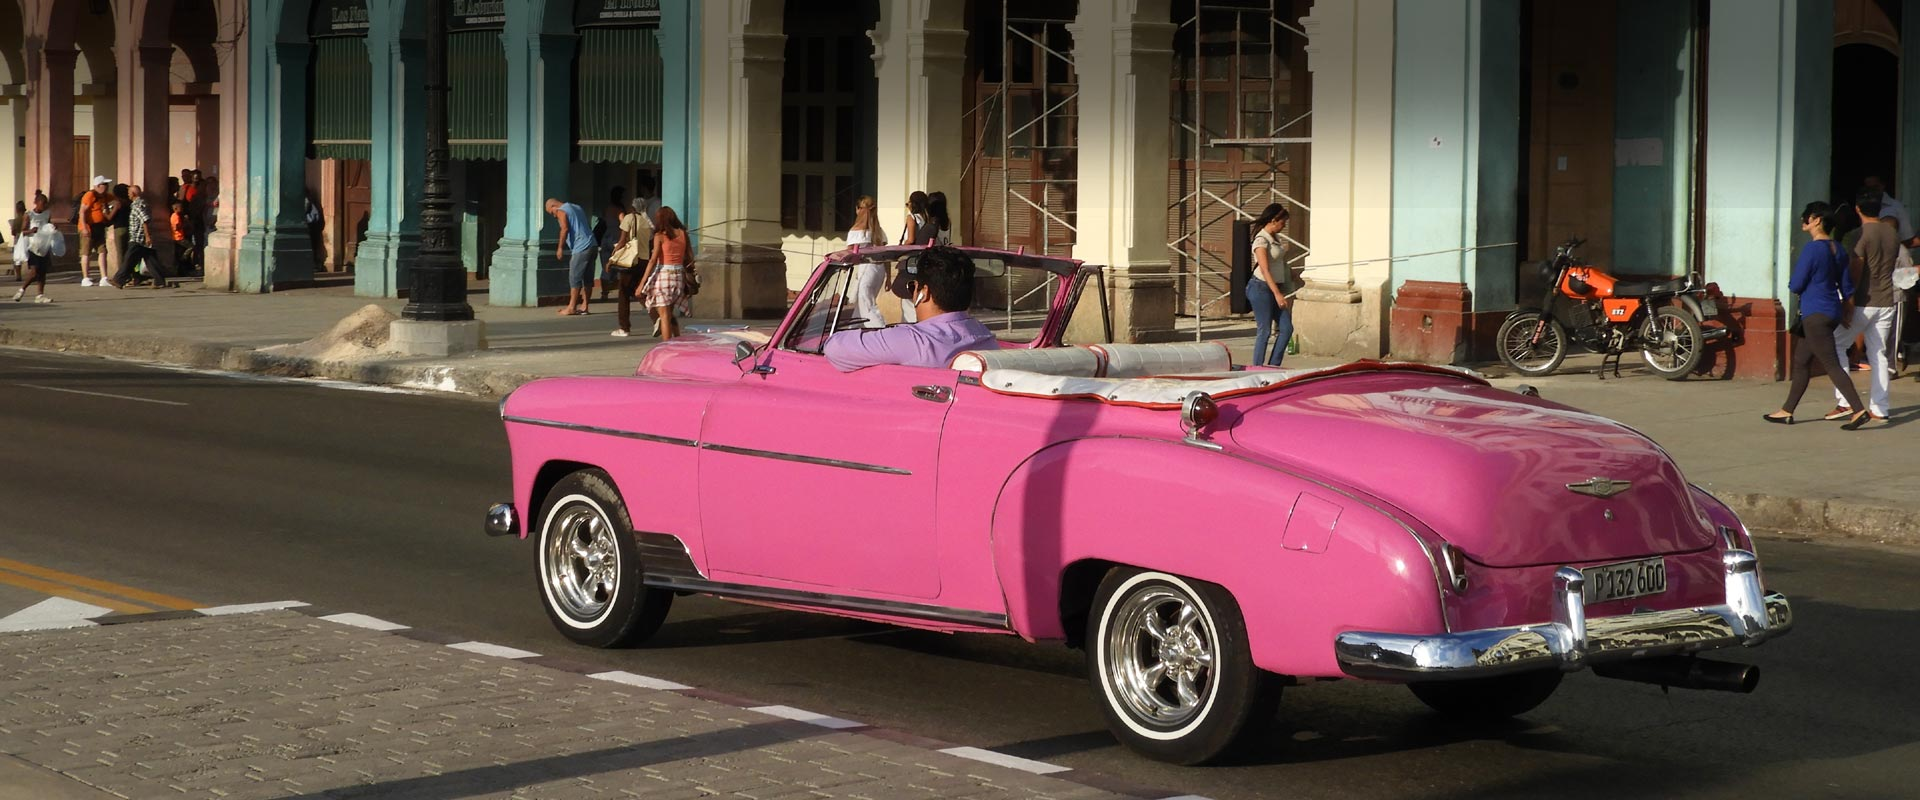 Happy Customers in Flamingo Havana Taxi